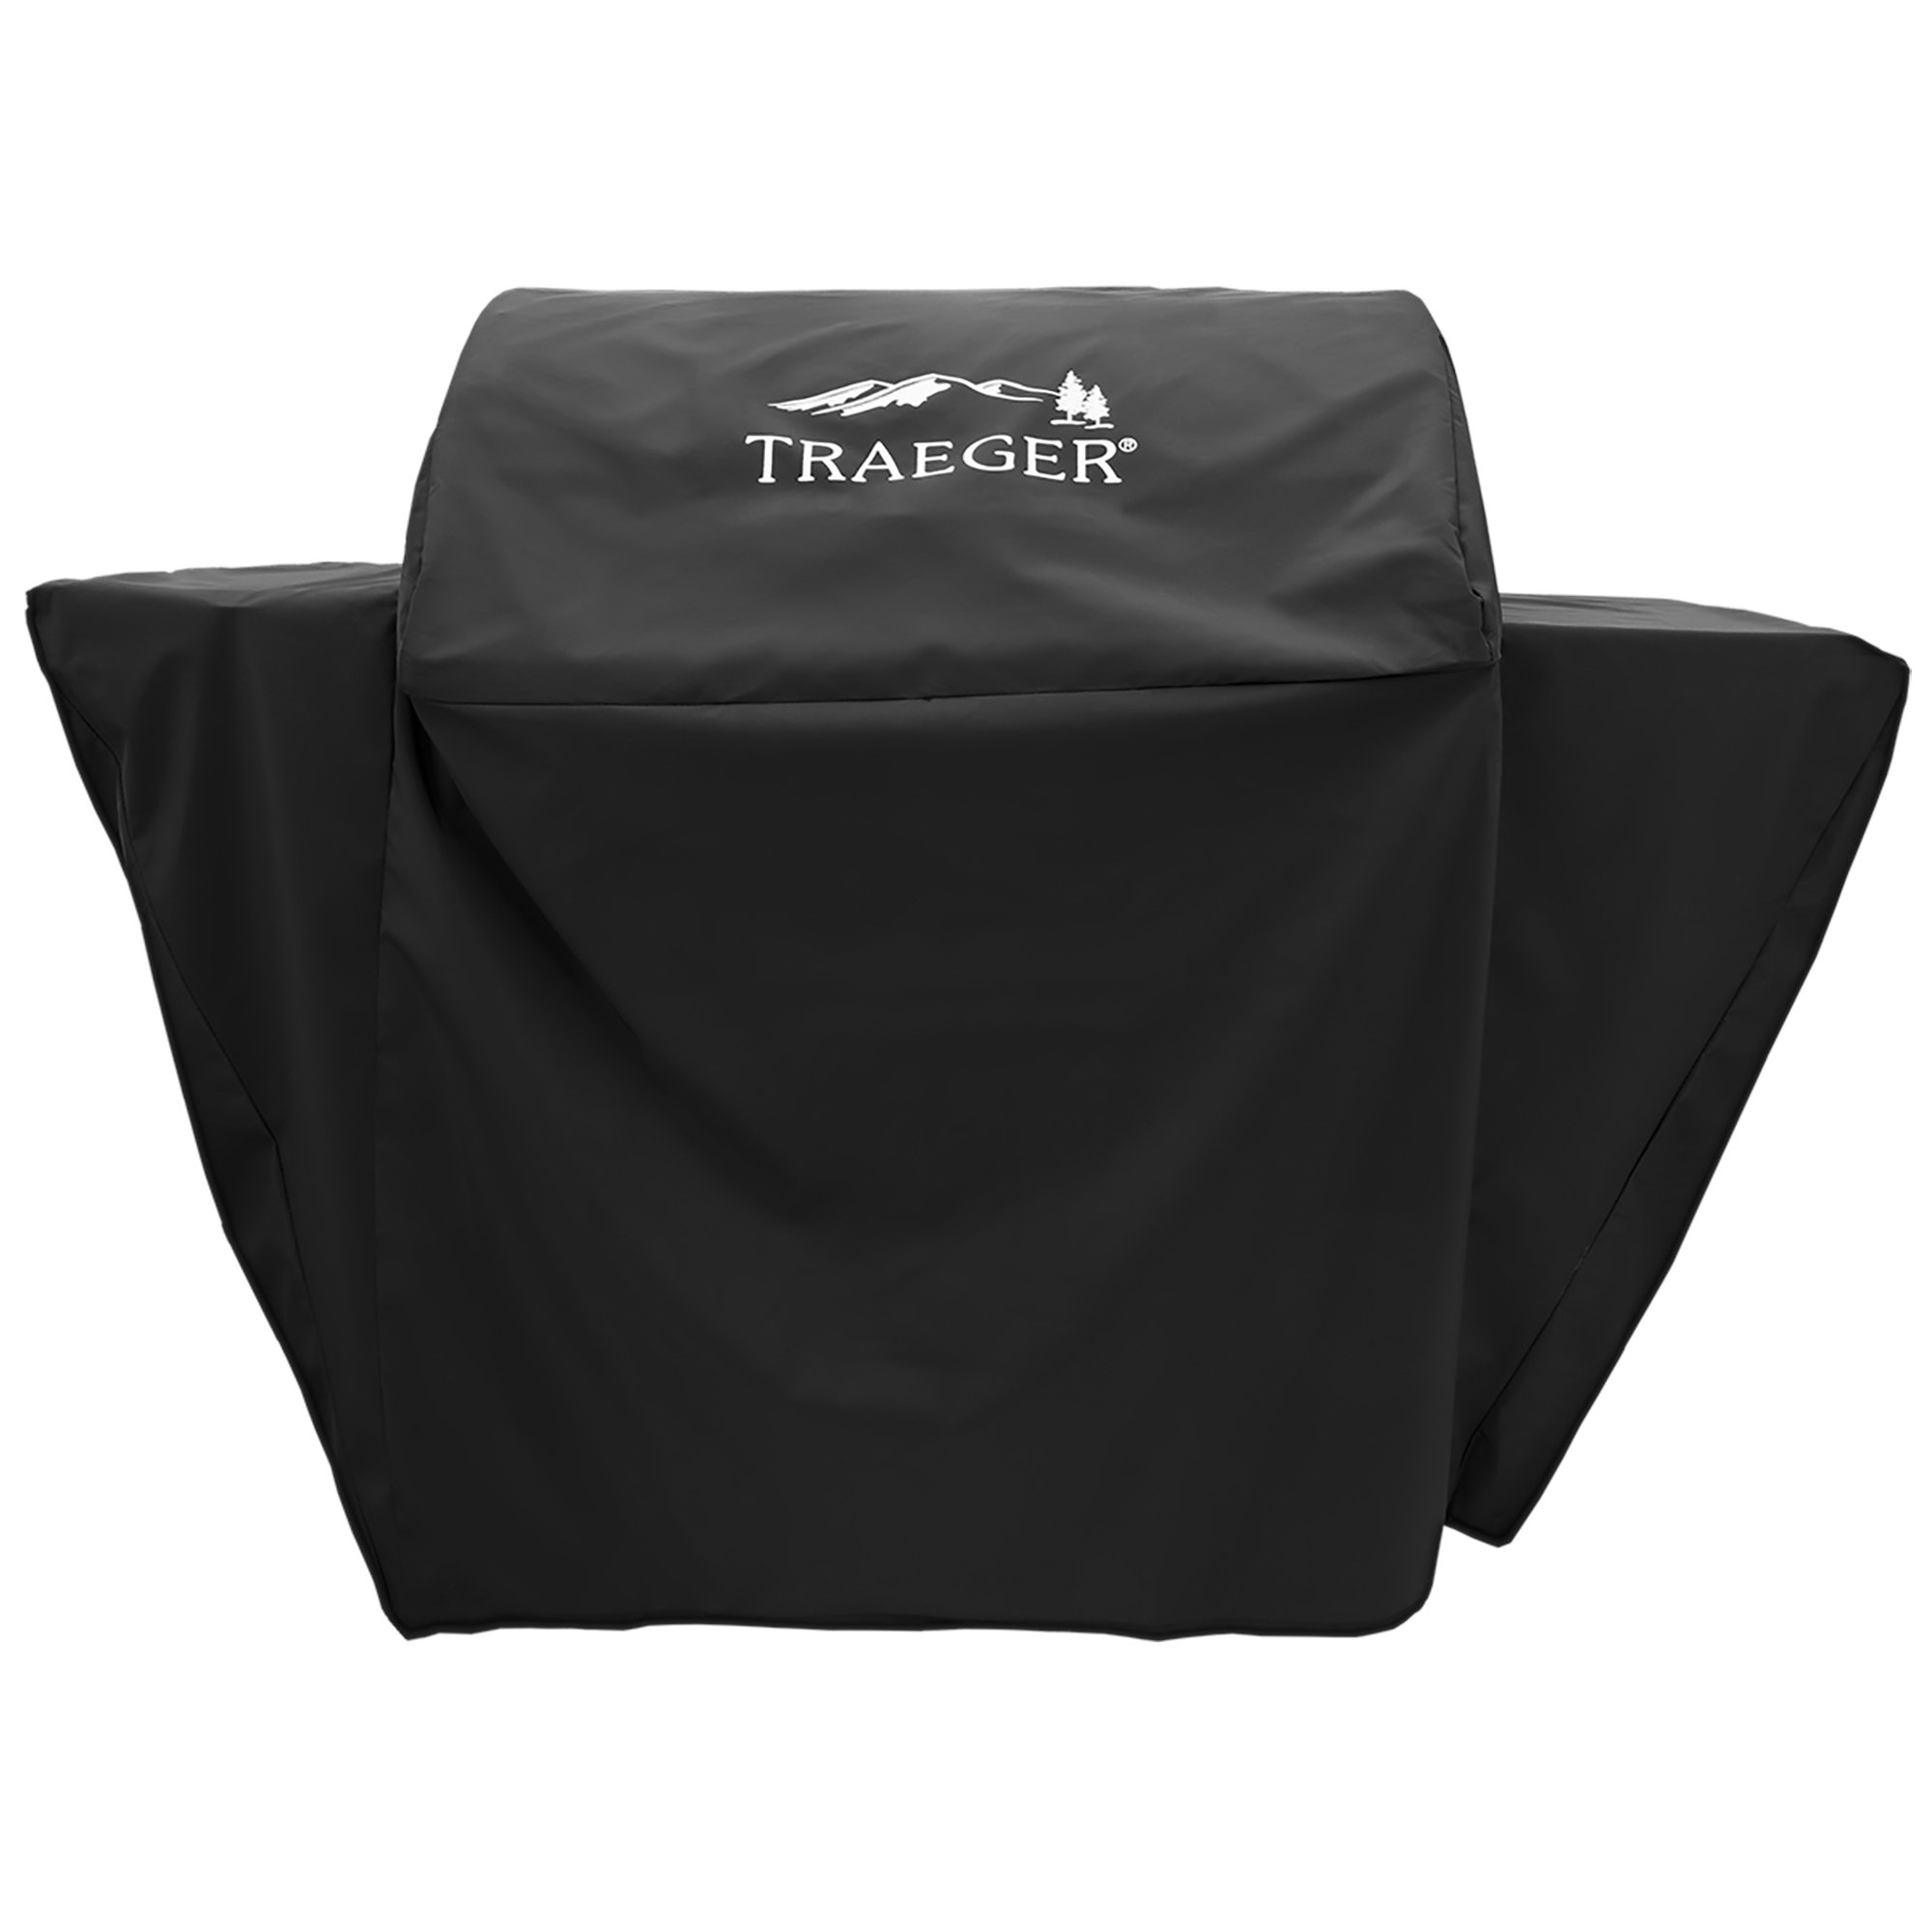 Traeger BAC375 Full Length Select Grill Cover by Traeger